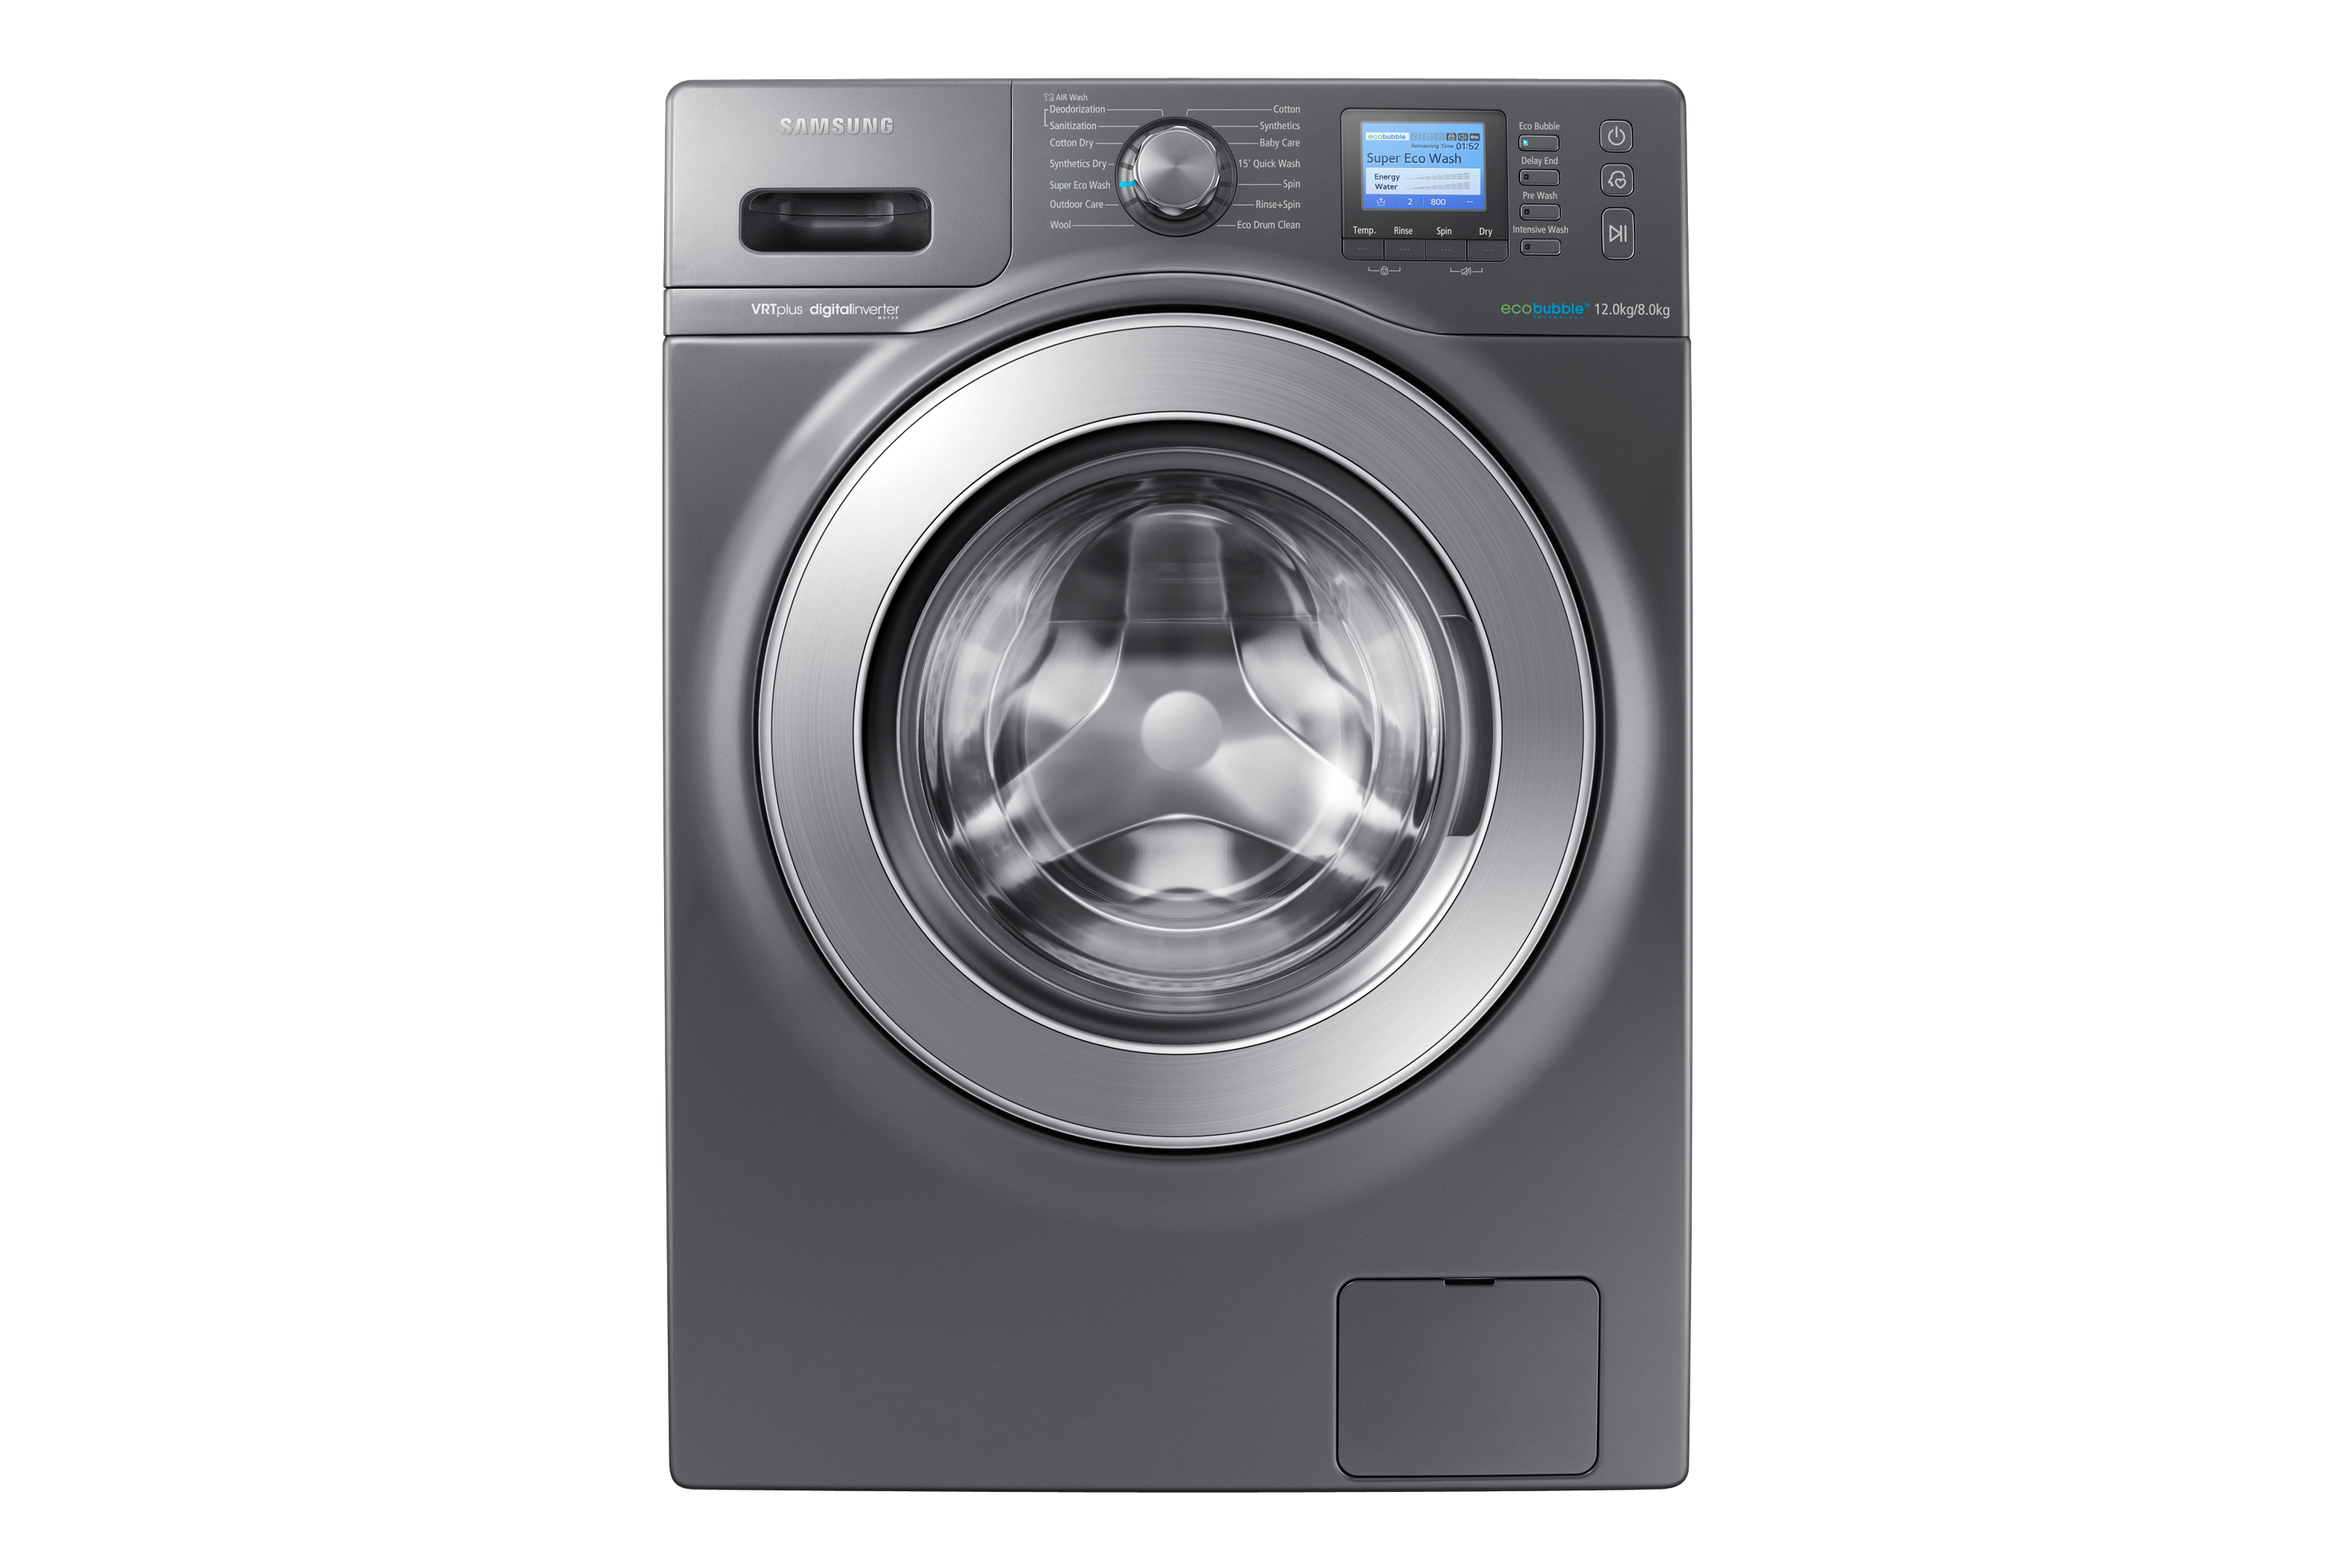 Samsung Wdf900c Front Load Washer Dryer 12kg Price In